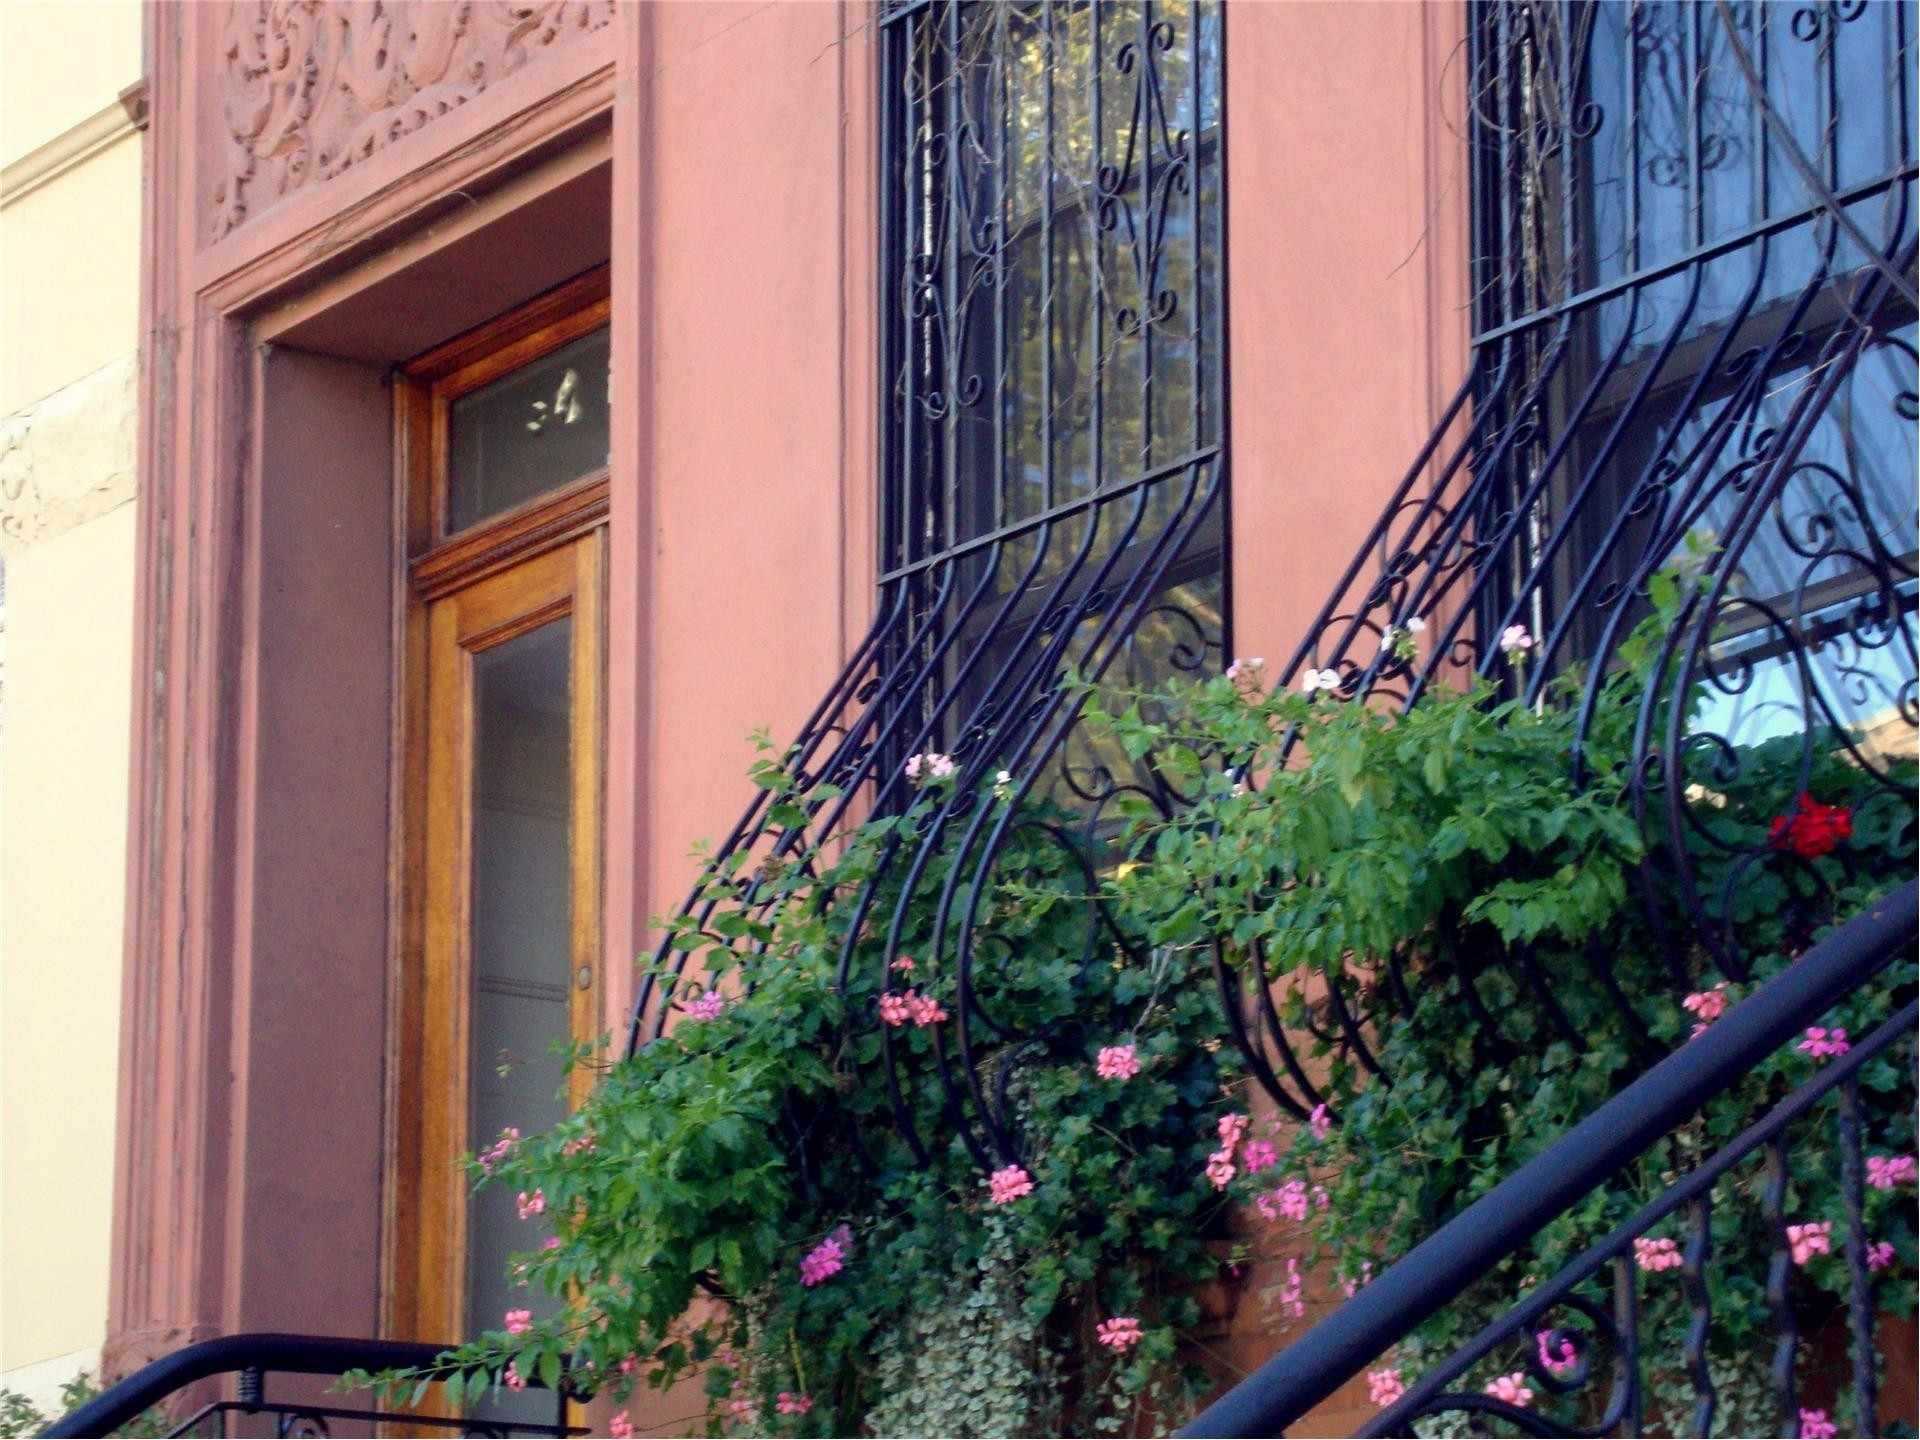 1. edificio en 420 Park Pl, Prospect Heights, Brooklyn, NY